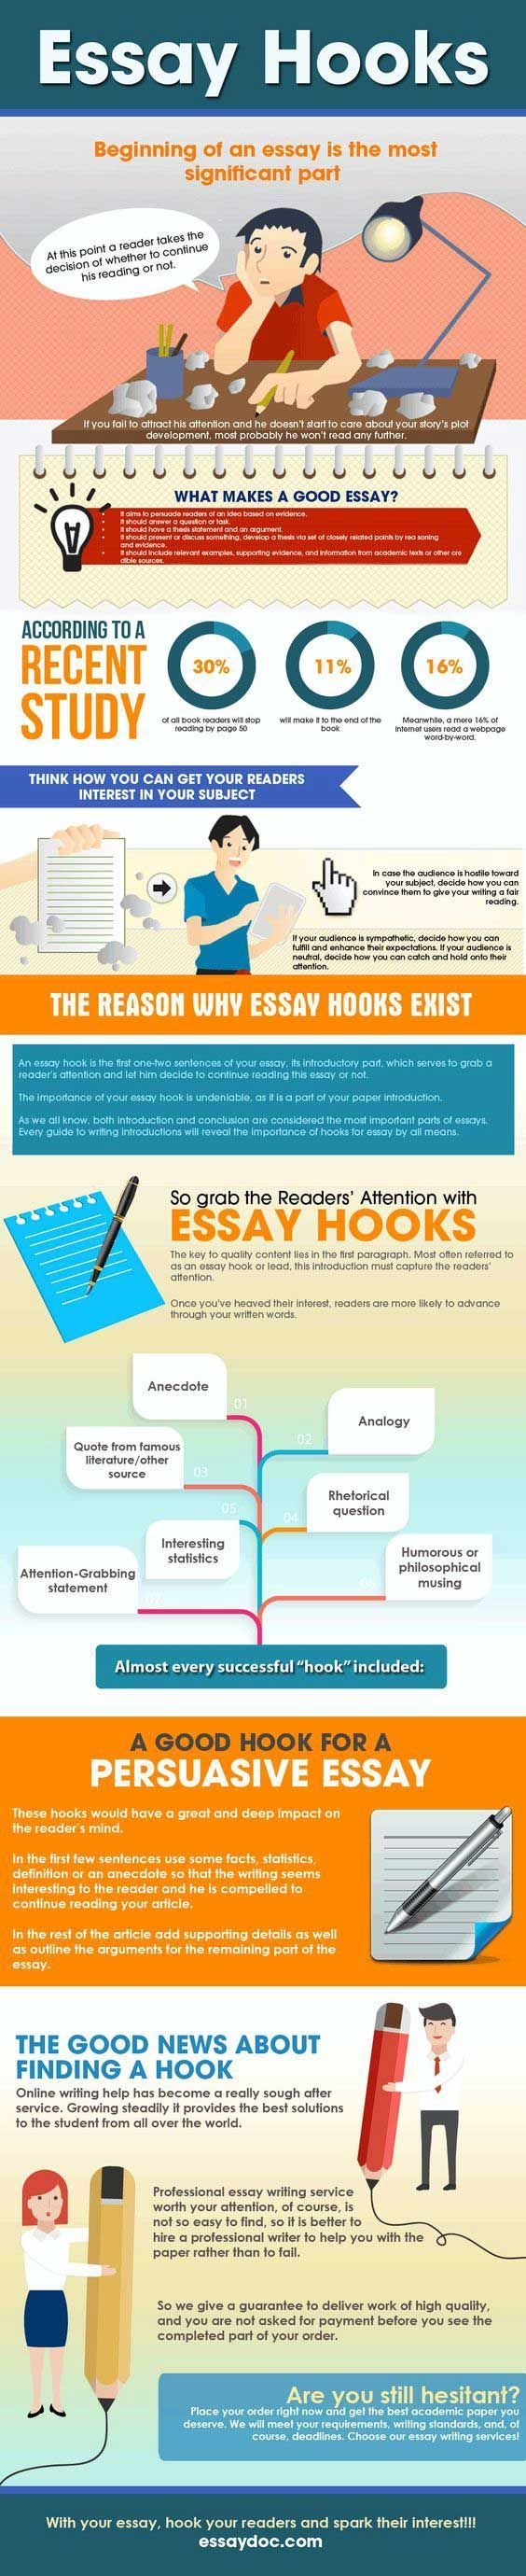 Essay Generation Gap  Ideas About Writing An Essay Essay Writing  Ideas About Writing An Essay  Essay Writing English Argument Essay Topics also Example Of Division And Classification Essay Advertising Good Or Bad Essay Essay About Advertising Good Or Bad  Sonnet 116 Essay